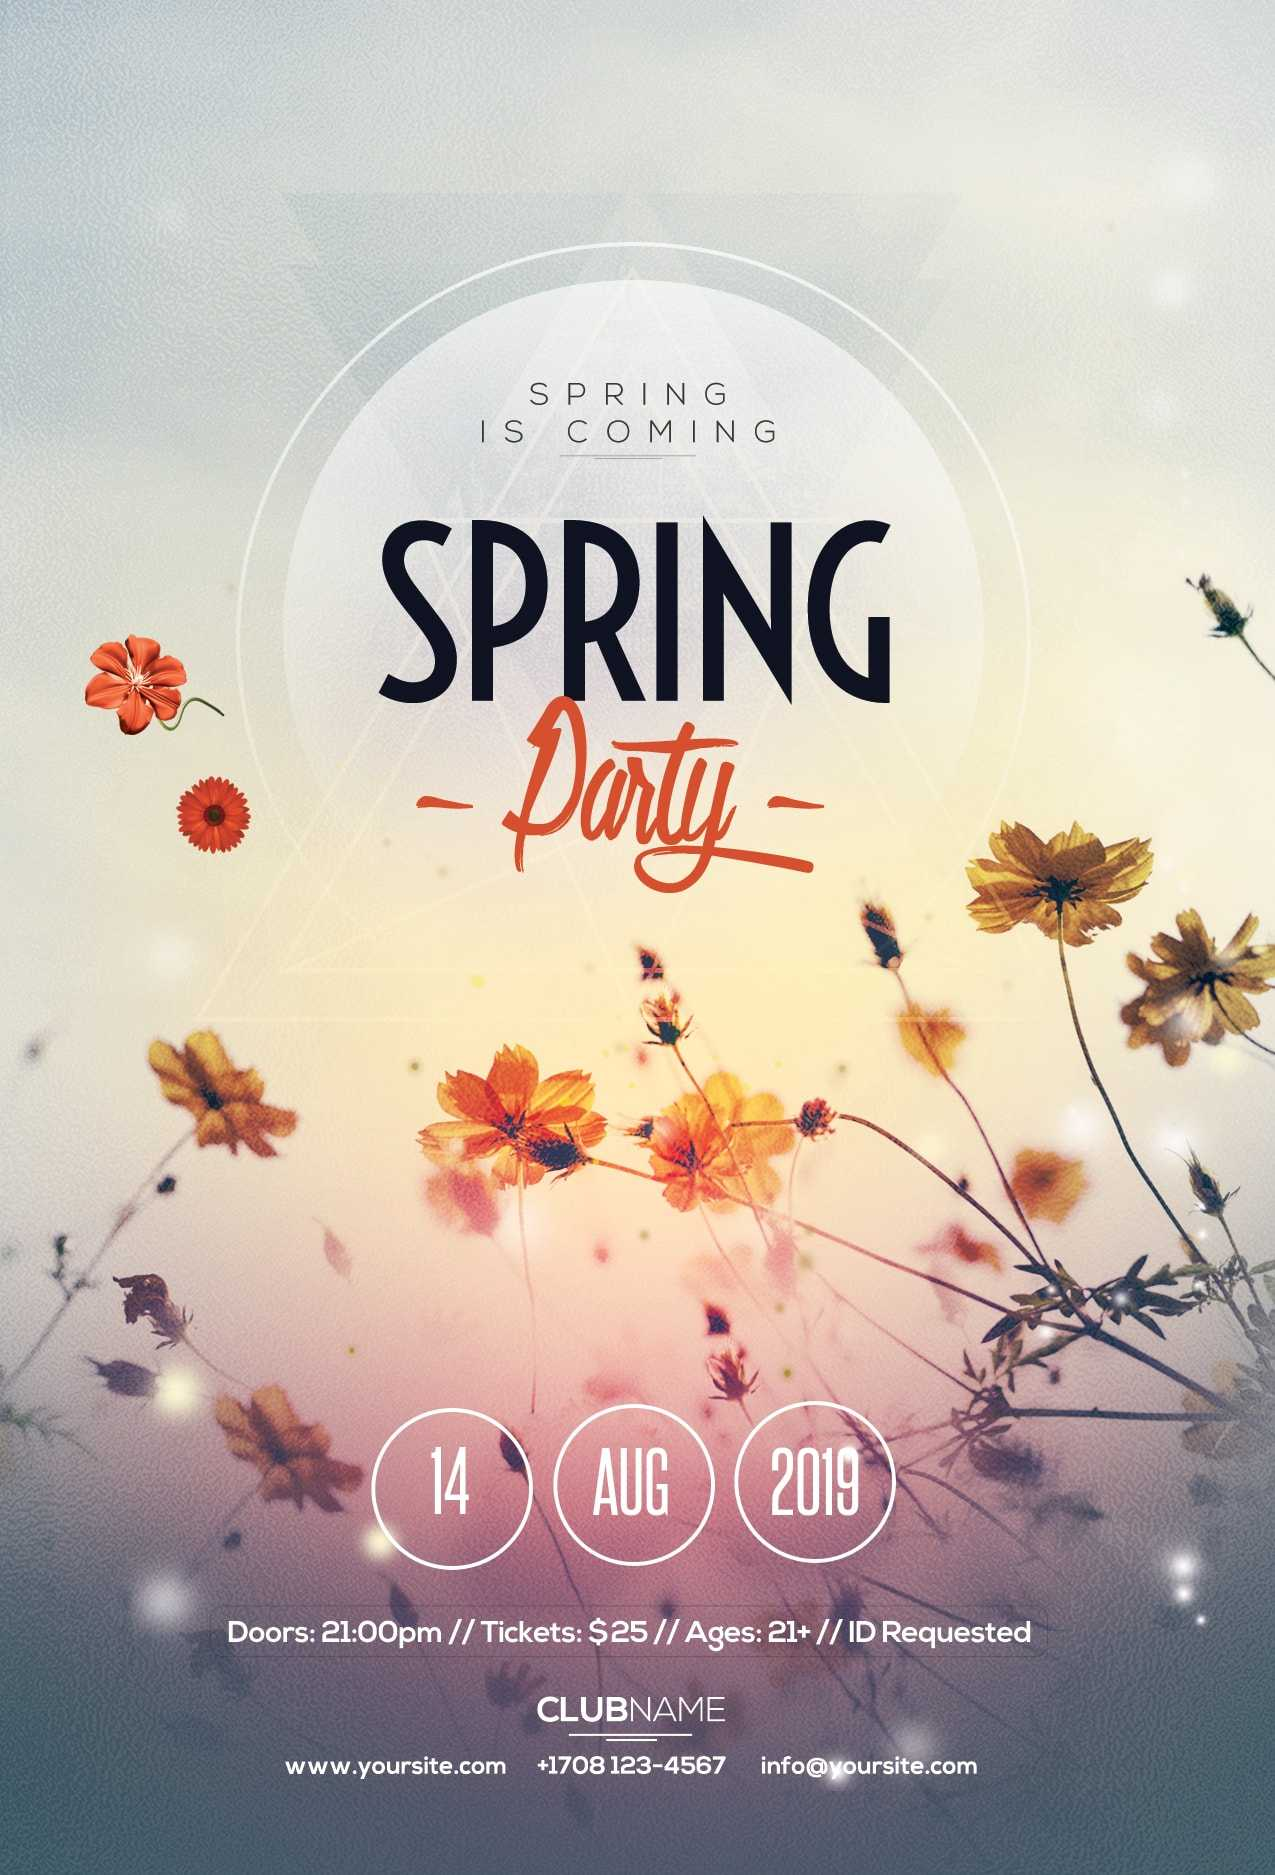 Spring Party Free Psd Flyer Template - Free Psd Flyer Regarding Free Spring Flyer Templates